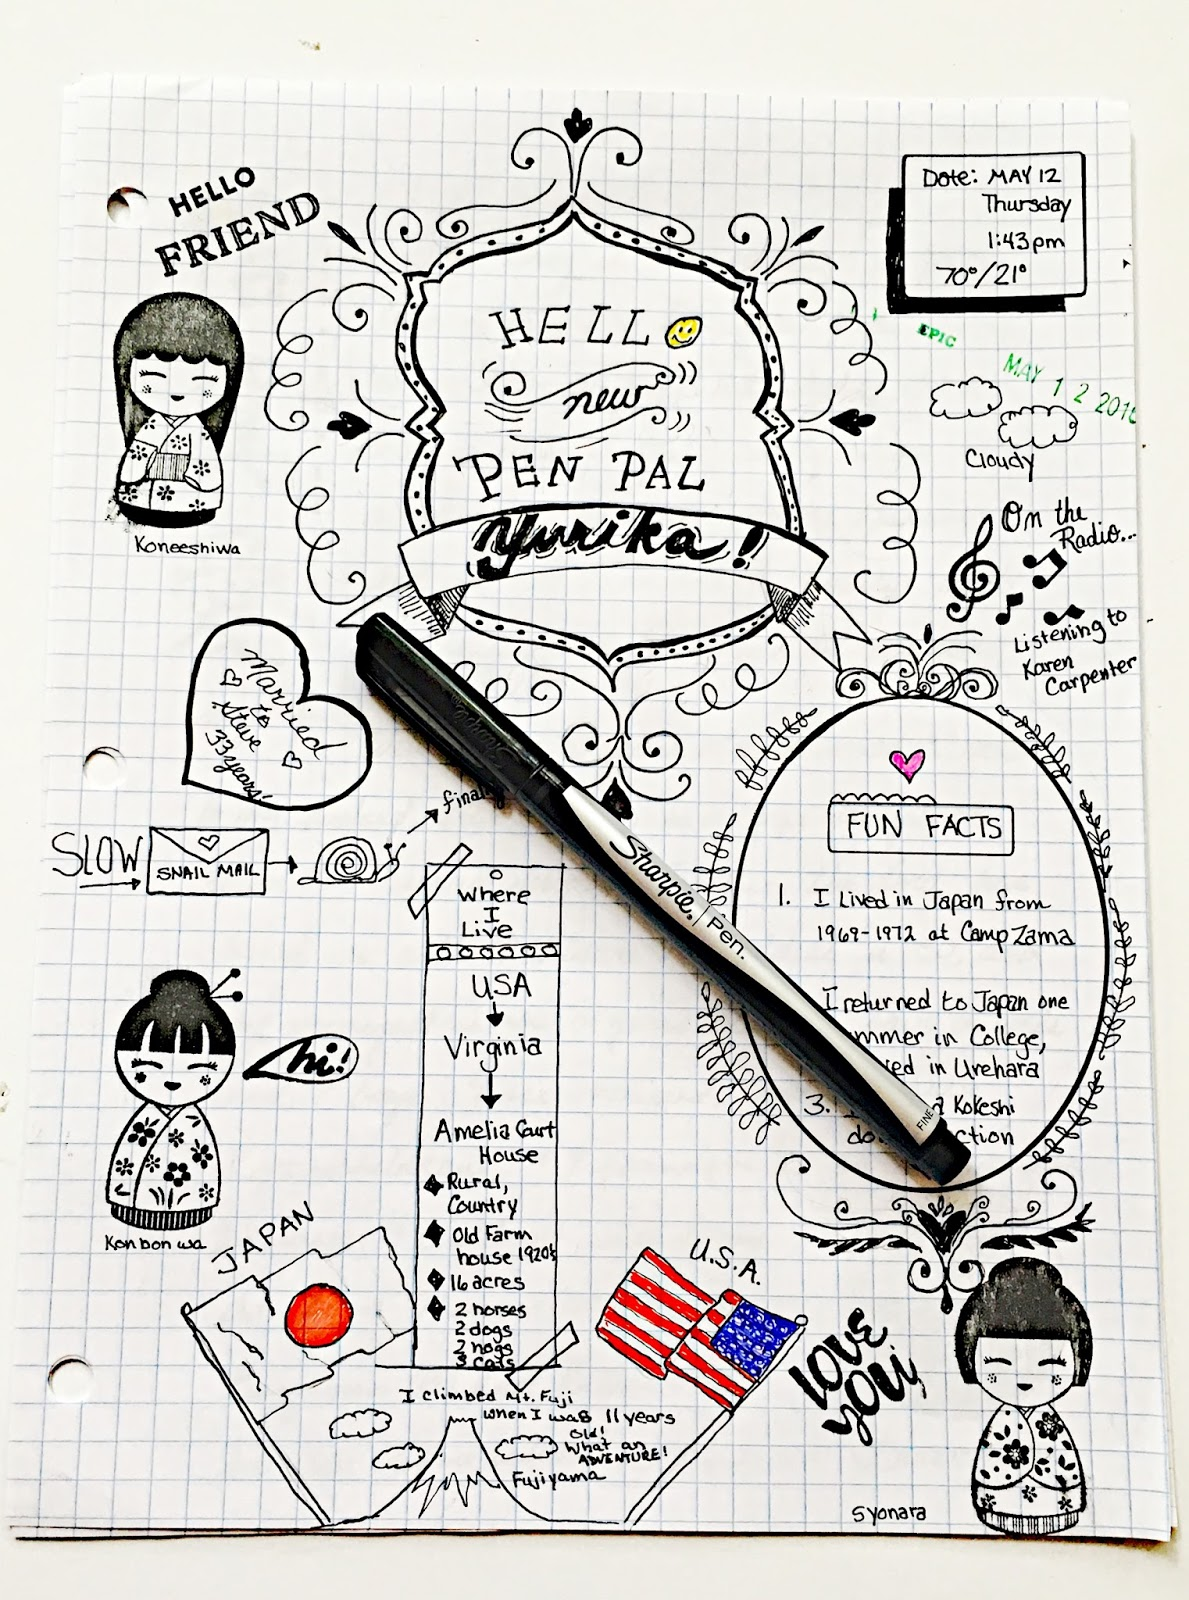 The lost art of letter writingvived introduction pen pal letter introduction pen pal letter spiritdancerdesigns Gallery